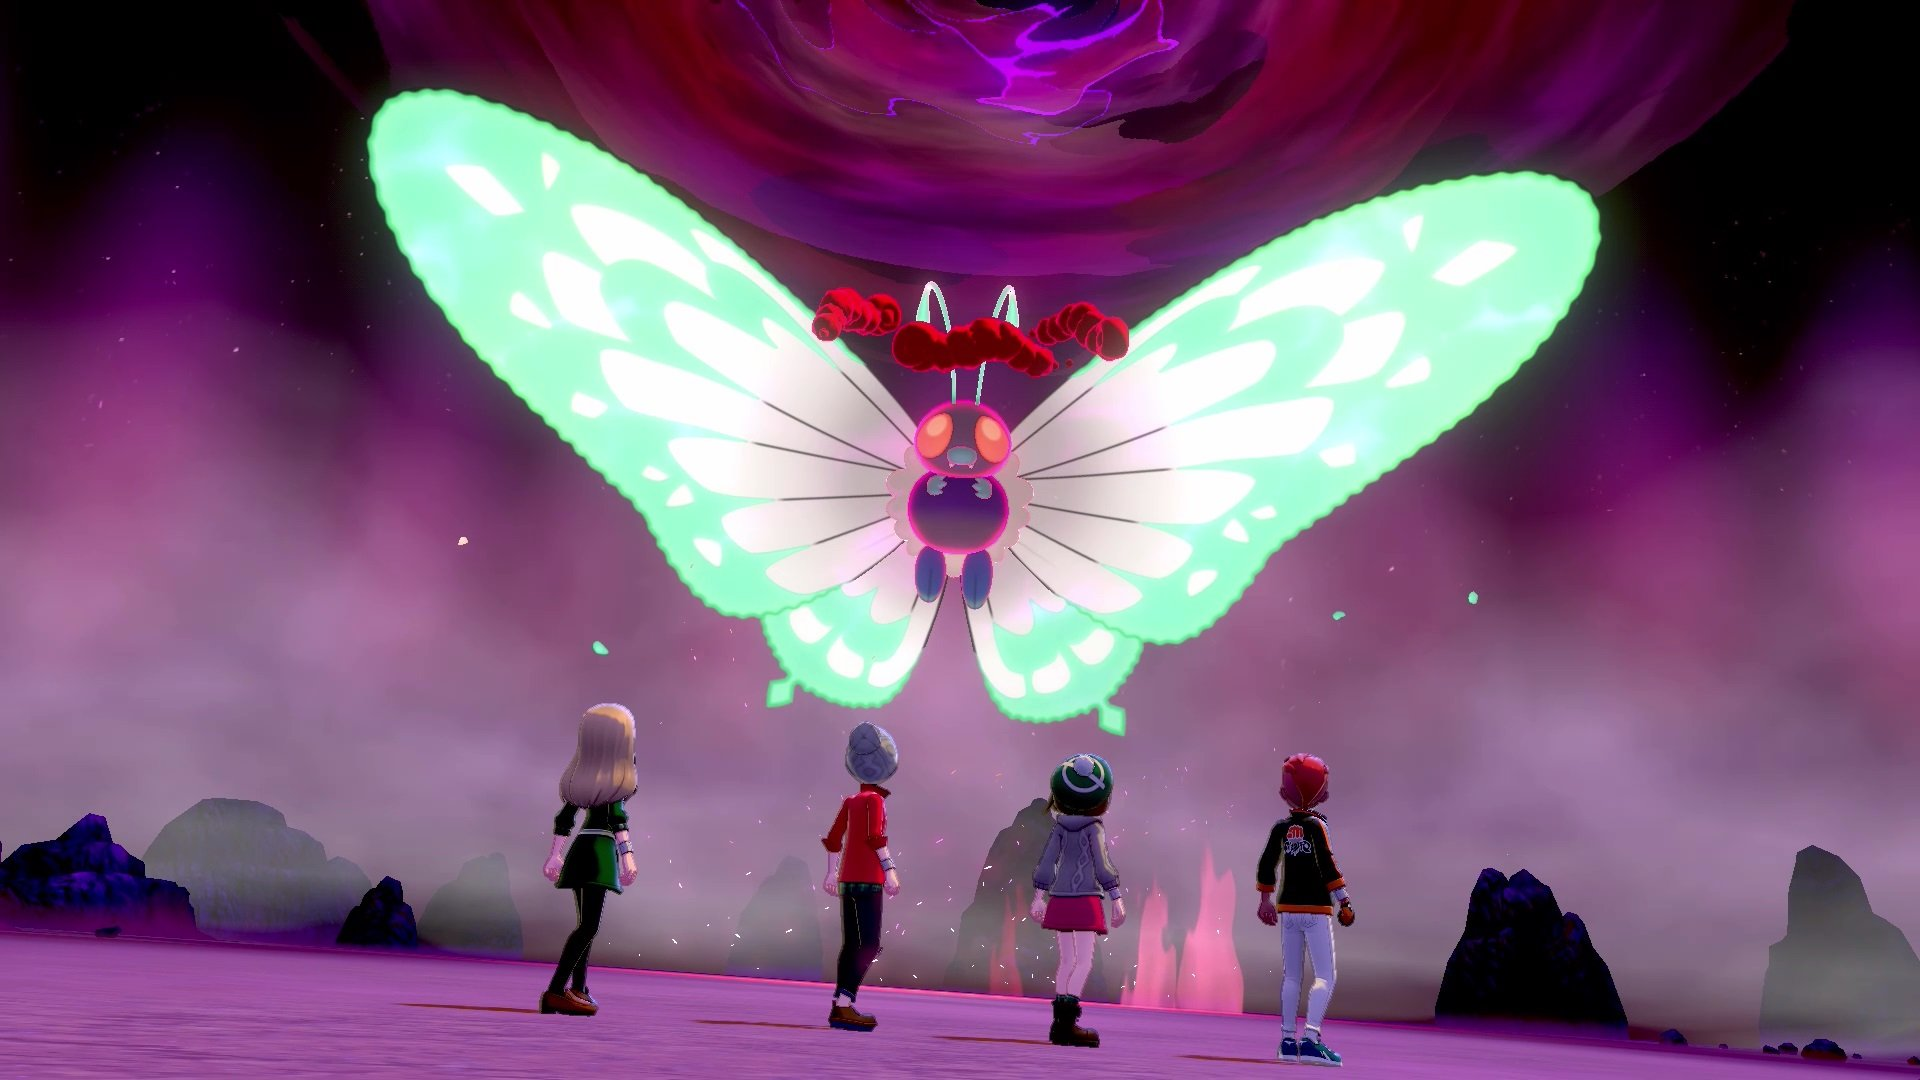 Pokémon Sword and Shield Dynamax Butterfree